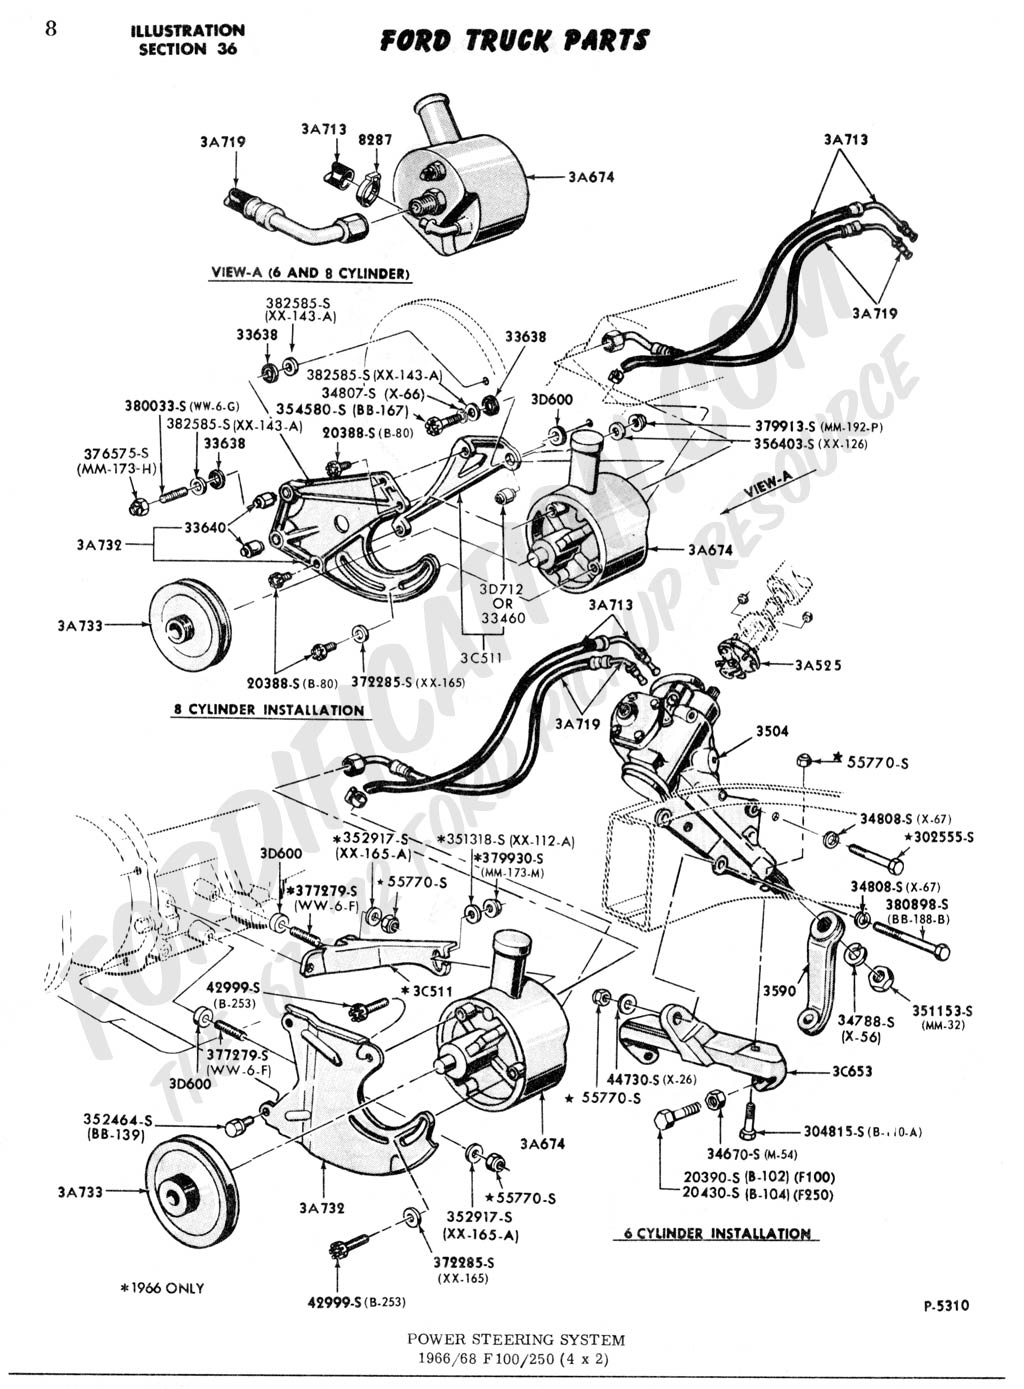 Wd Pwrsteering on 1972 Ford F100 Wiring Diagram